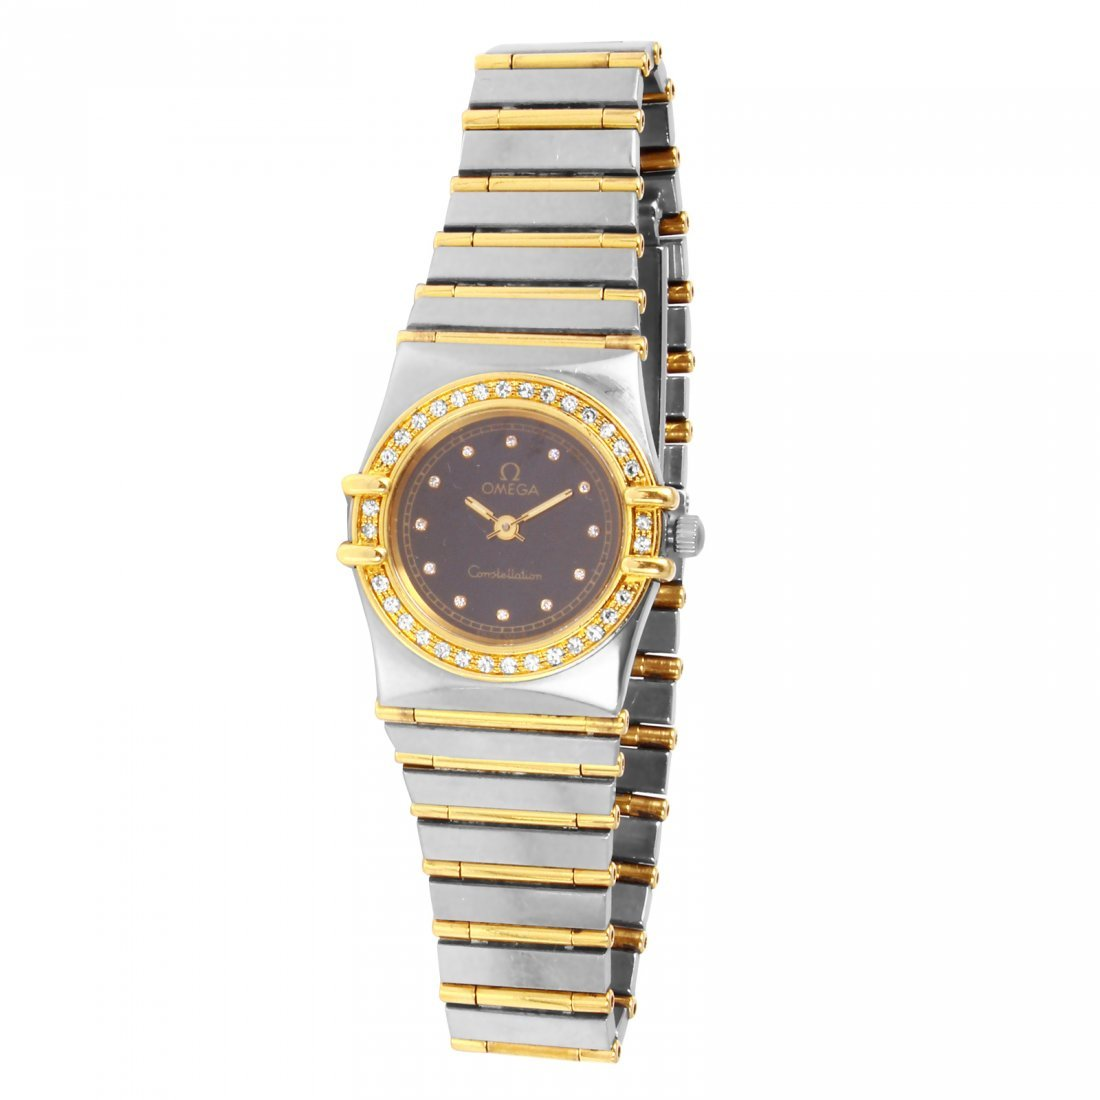 14KT Gold Omega Constellation Watch